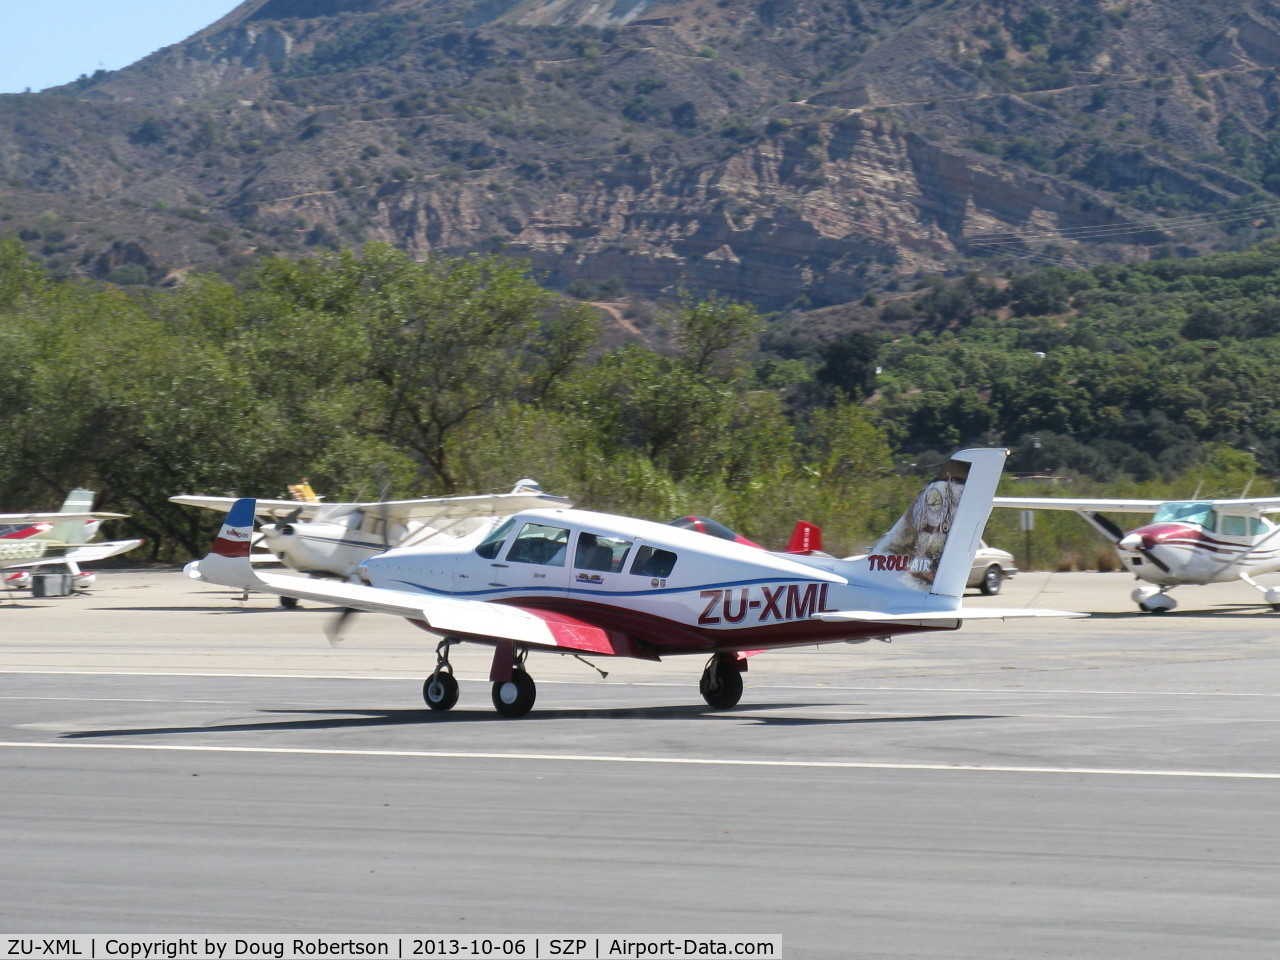 ZU-XML, 2009 Ravin 500 C/N 0905021, 2009 SA Ravin Aircraft CC RAVIN 500, Lycoming IO-540 260 Hp, winglets, of Troll Air on Round the World Solo Flight, pilot Calle Hedberg, 160 gal. wing tanks+ferry tank, South Africa-based, thanks for stopping at SZP! landing roll Rwy 04